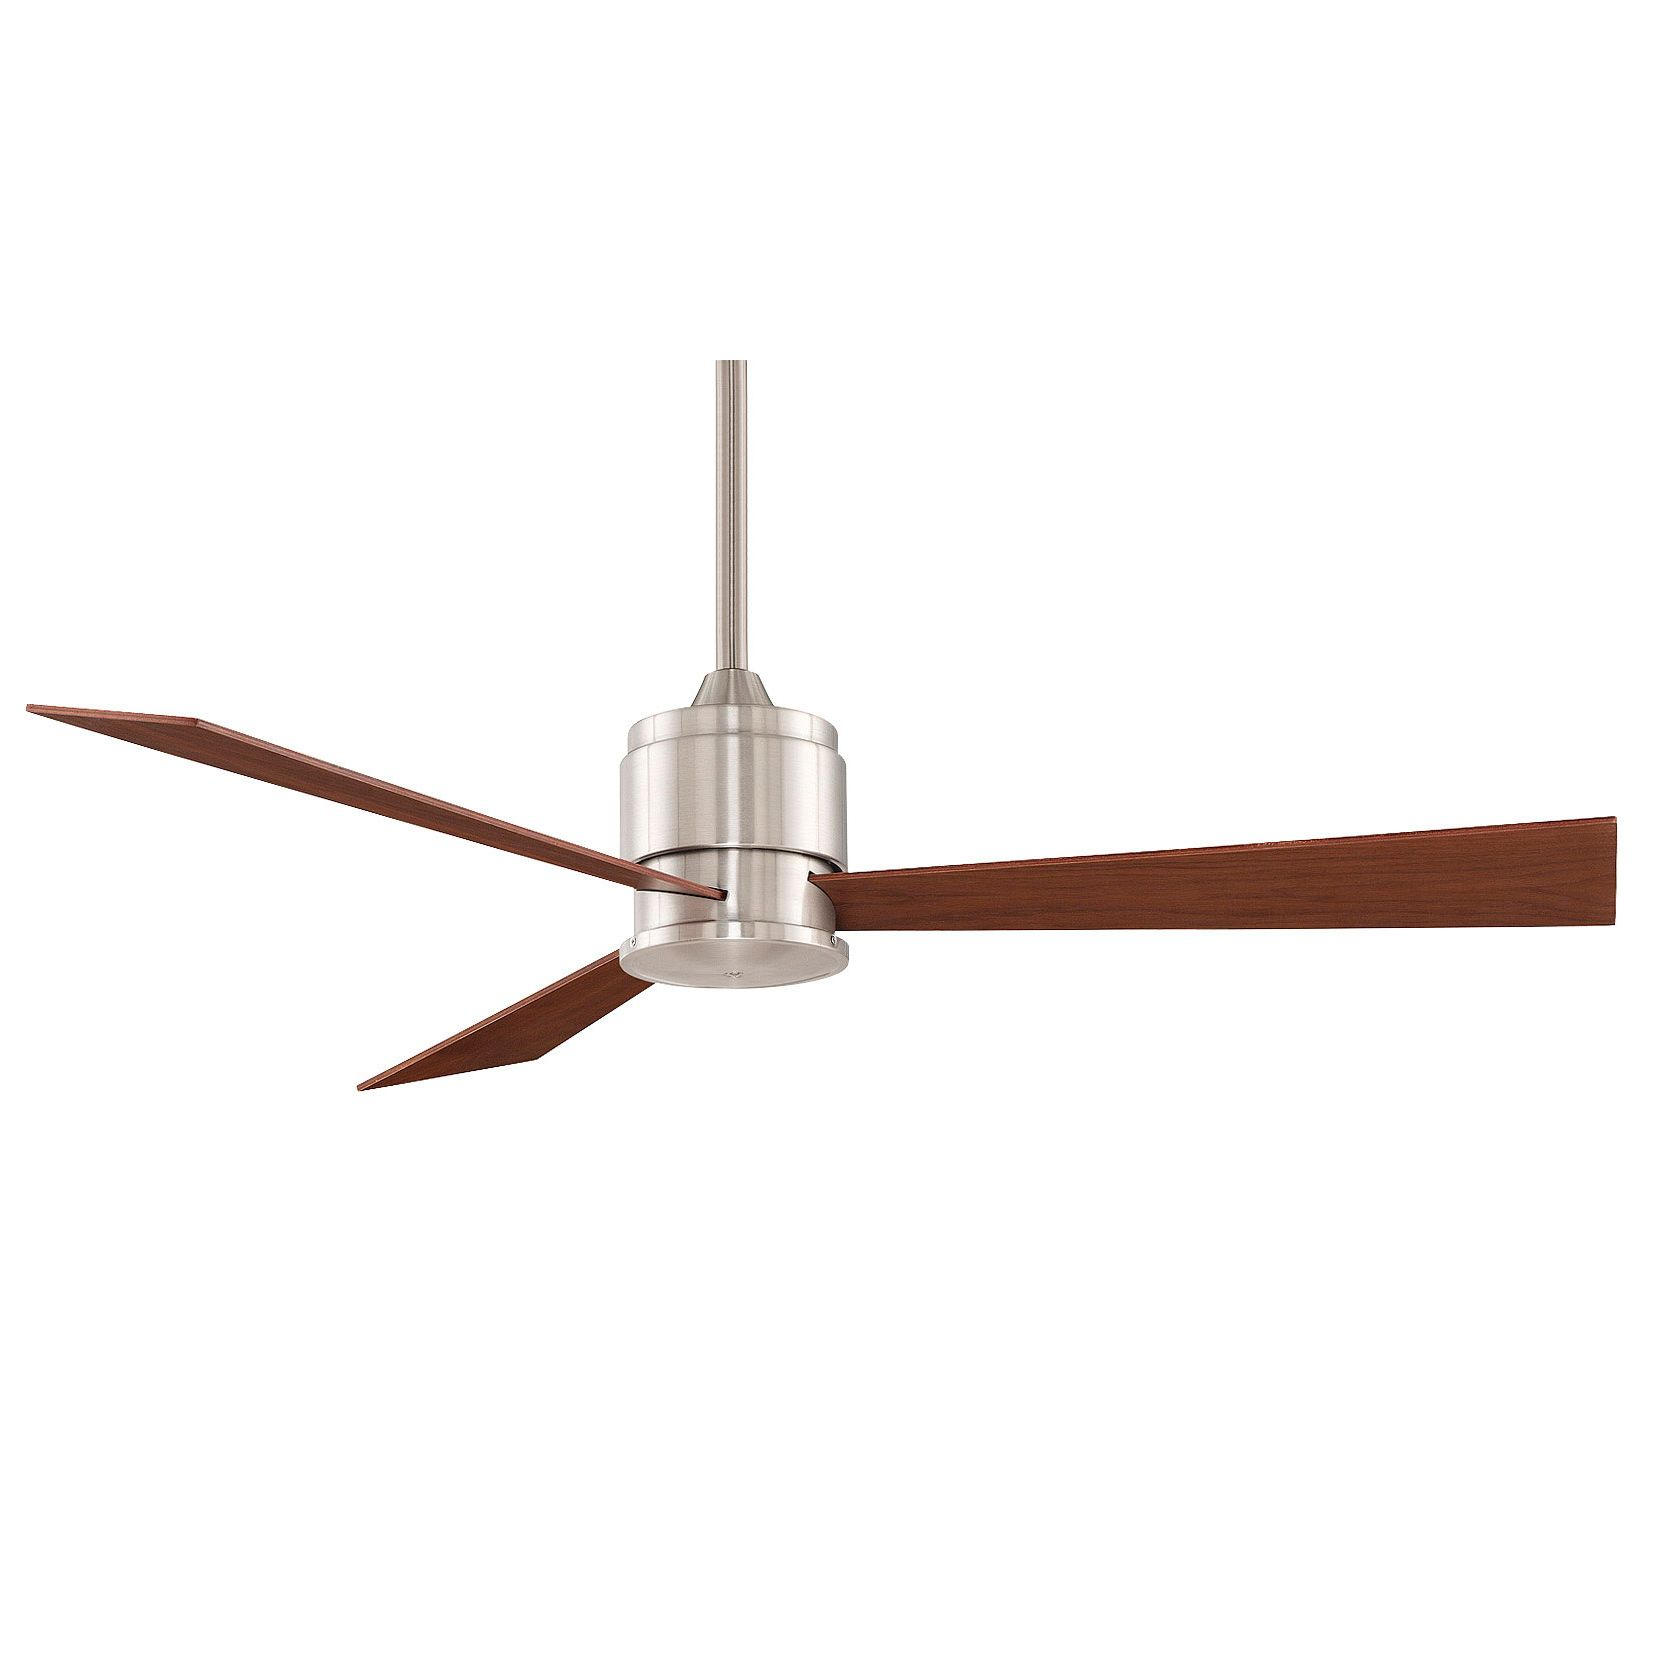 parts custom blades ideas ceiling fans design carlo replacement lovely ceilings murray monte mont decoration of stylish classy home cool for ventilator fan lighting feiss